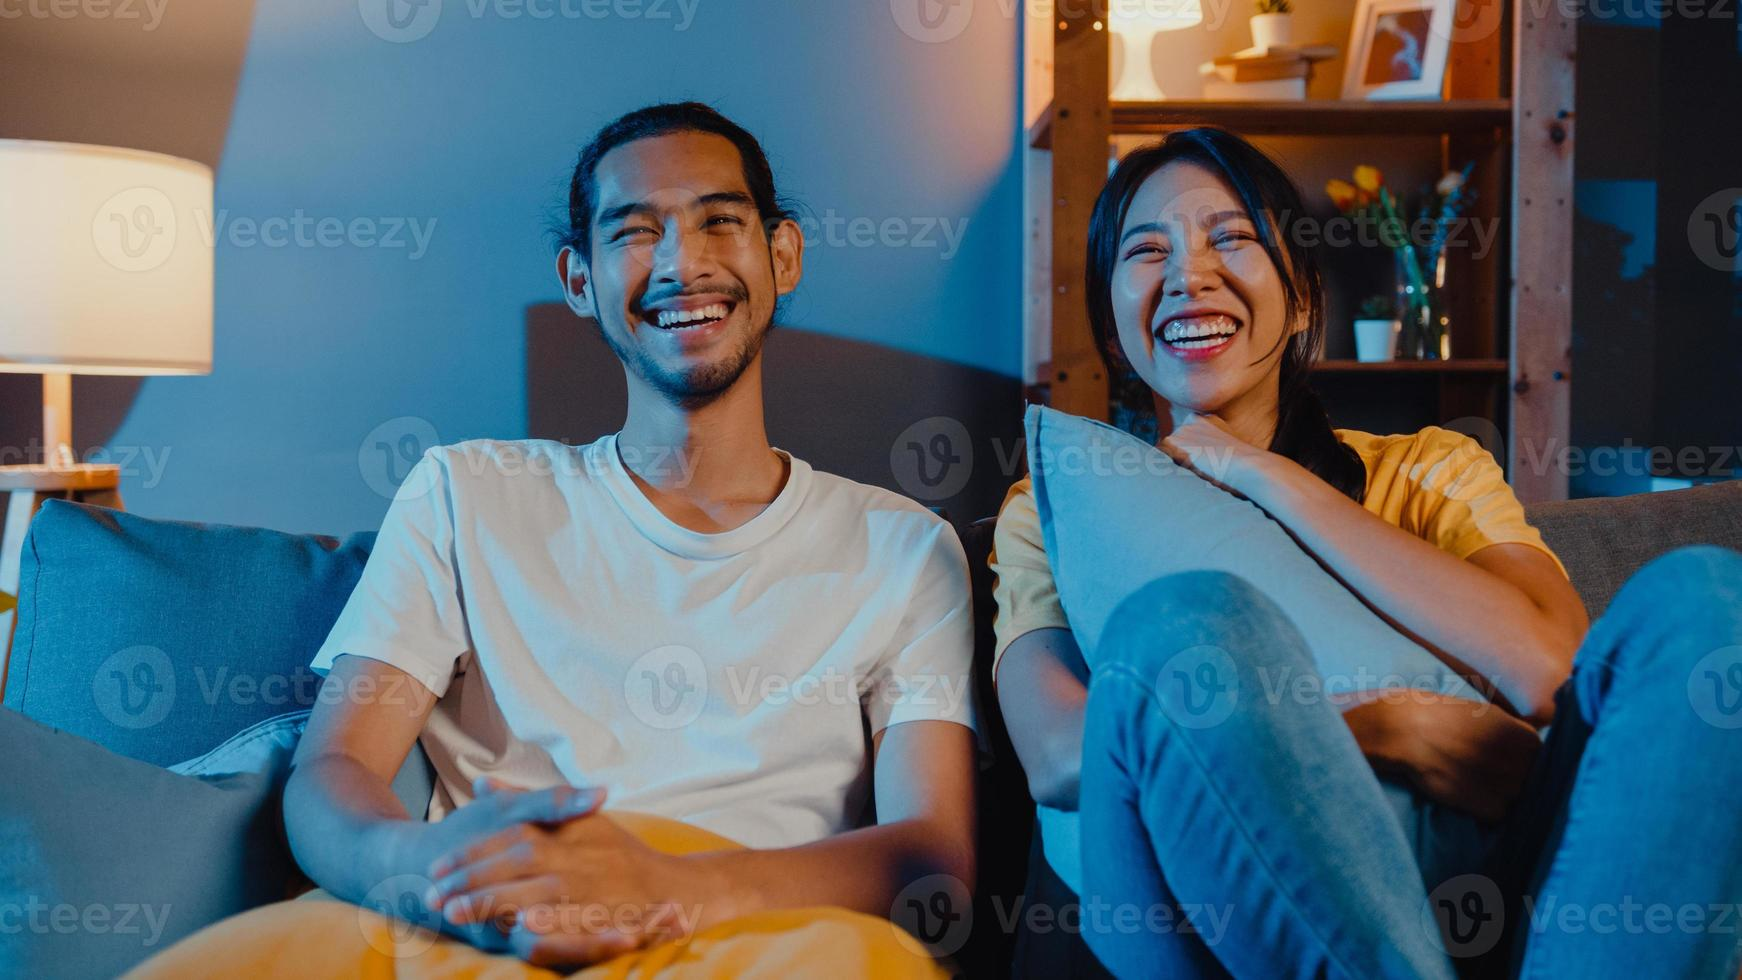 Romantic asia couple man and woman smile and laugh lay down on sofa in living room at night watch comedy movie on television together at home. Married couple family lifestyle, stay at home concept. photo